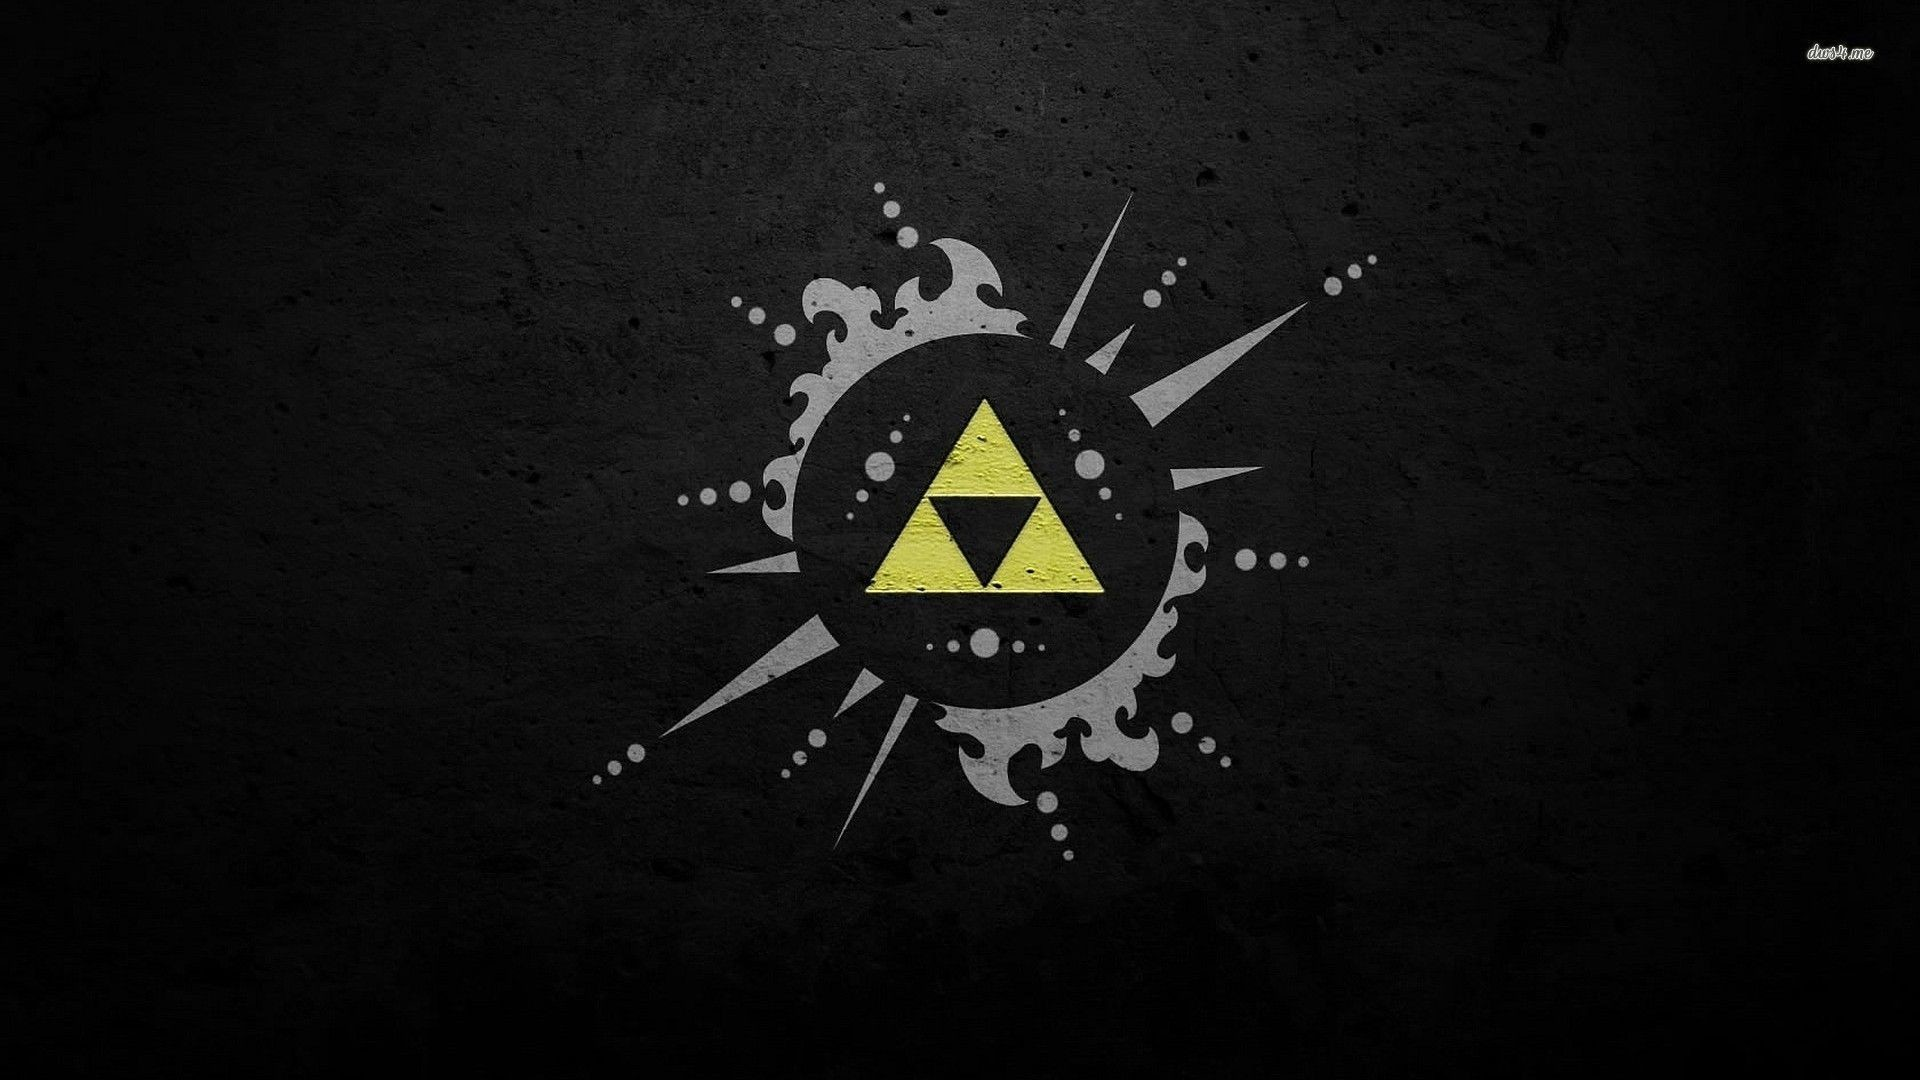 … zelda backgrounds wallpapers browse; awesome legend …